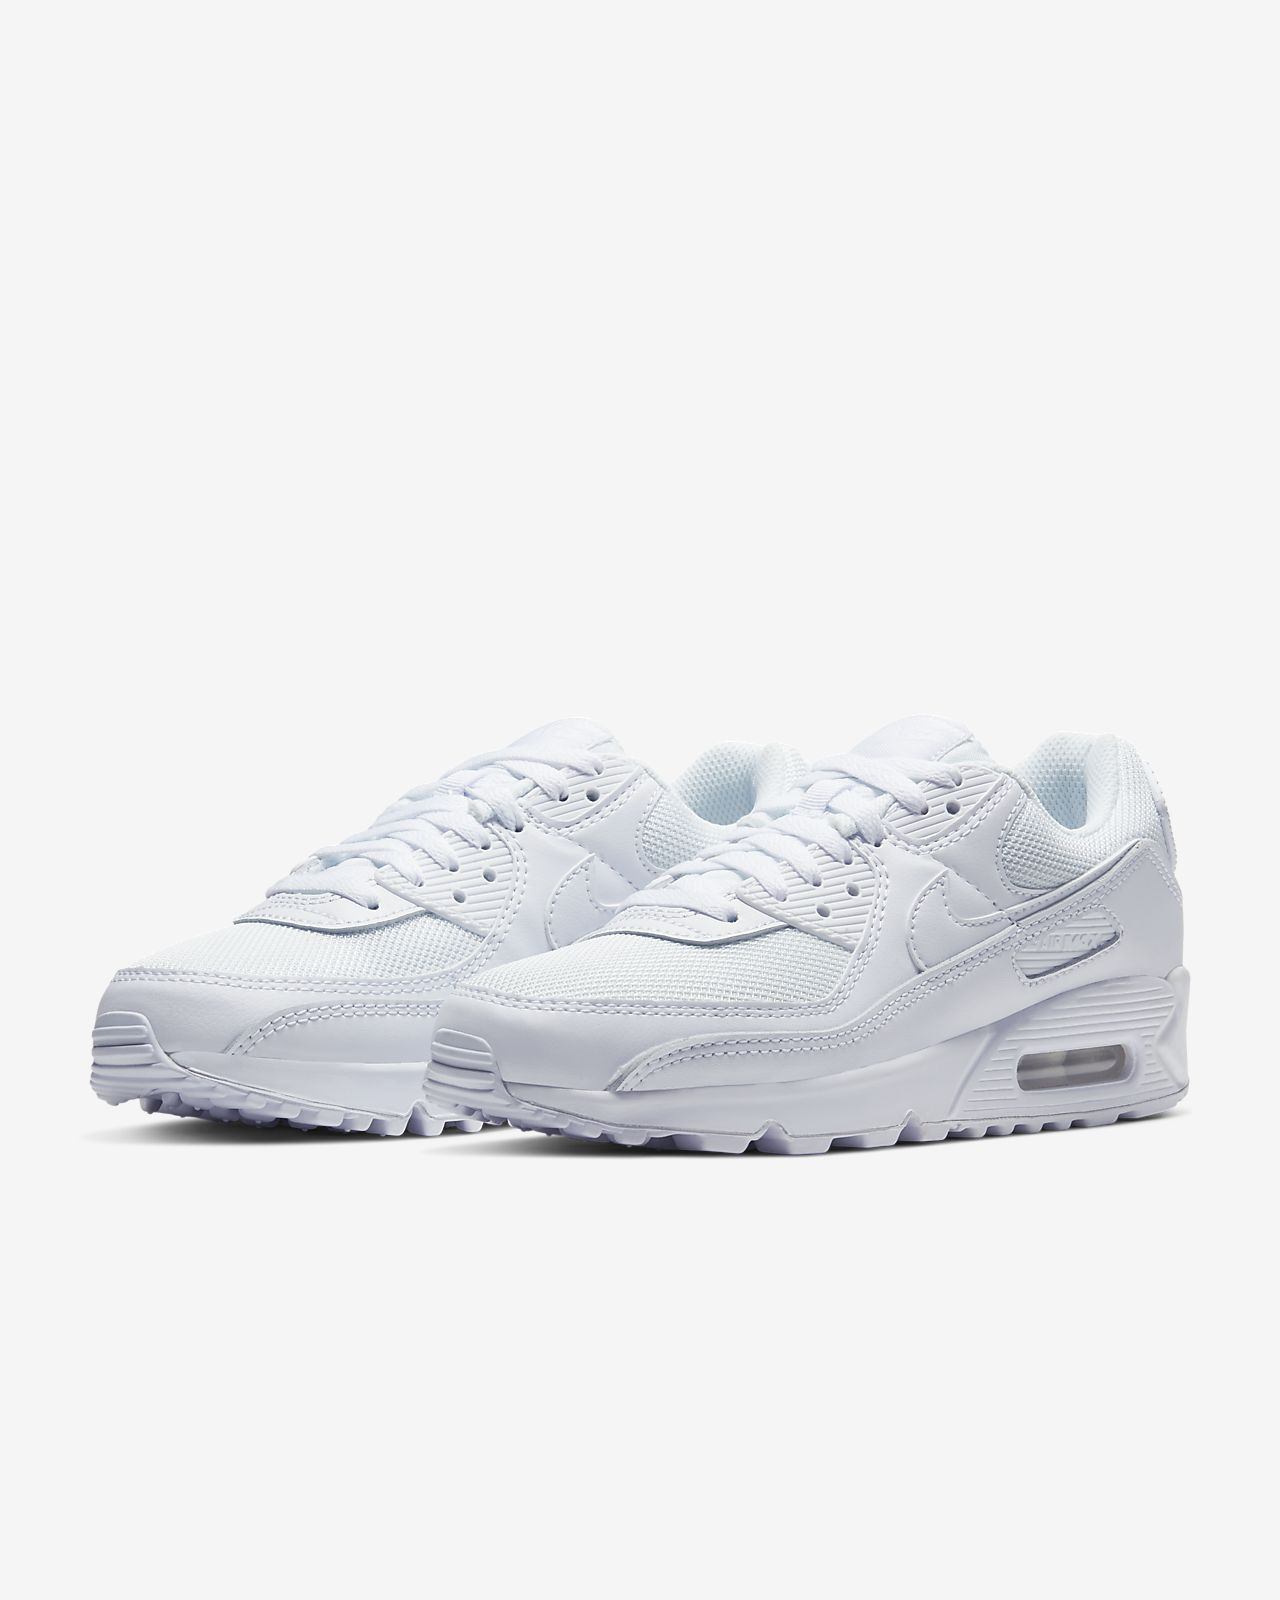 Nike Shoes | Air Max 90 Ez Gs Wolf Gray Running | Poshmark